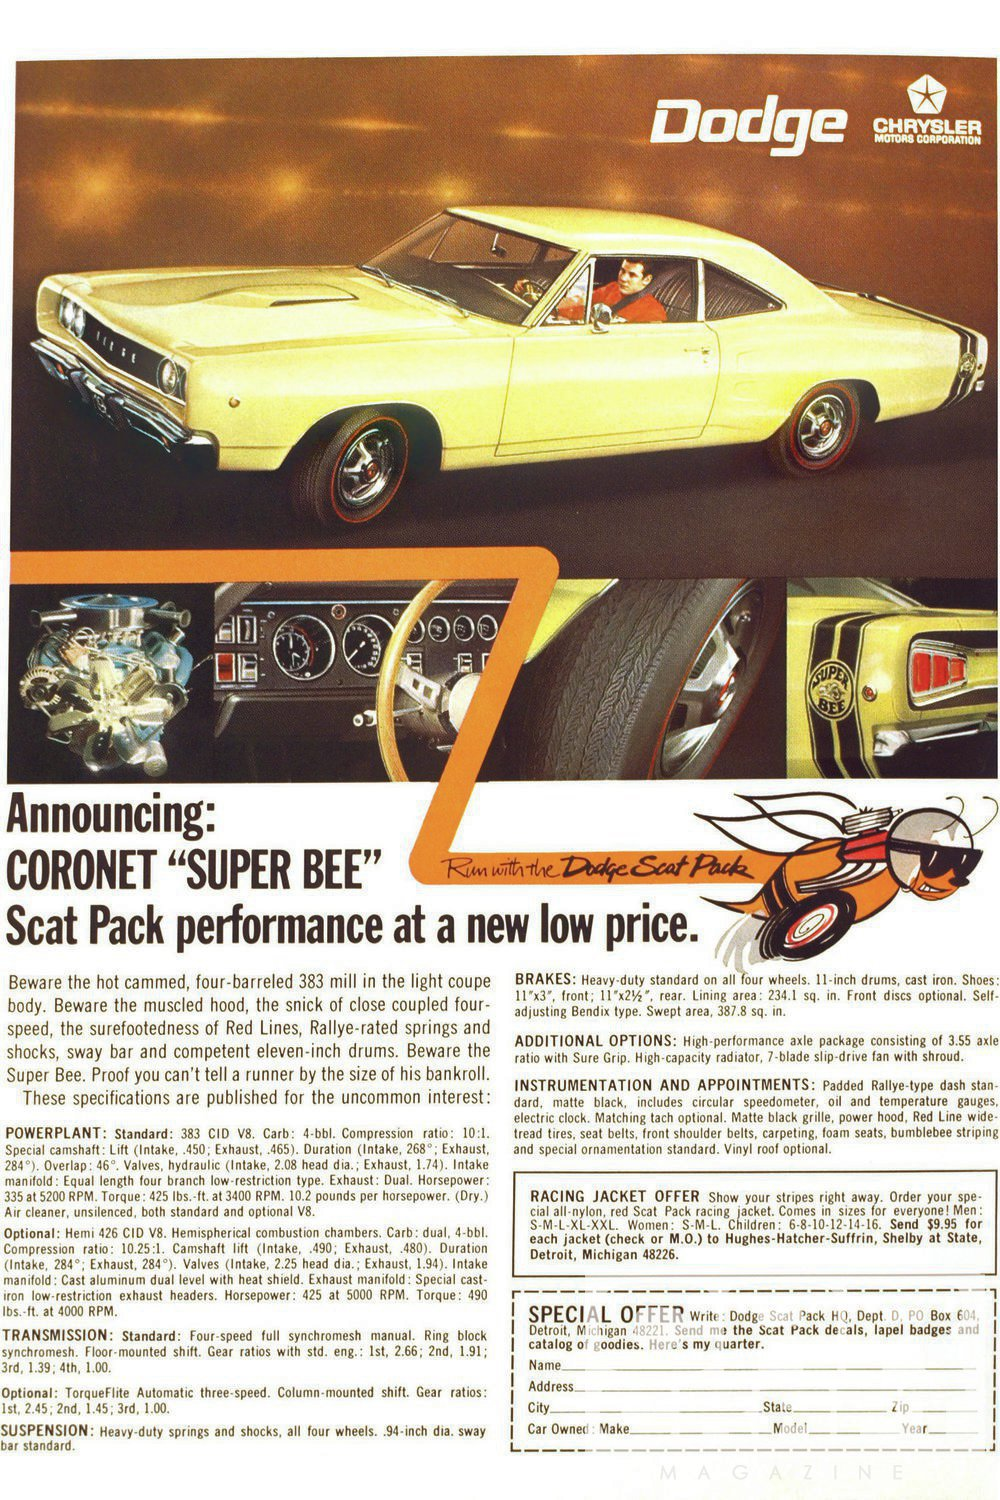 This magazine ad helped Dodge move 7,842 Coronet Super Bees in 1968 (versus 10,558 Coronet R/Ts). It wasn't a bad total considering the Bee's mid-year introduction. Dodge saw the runaway success of the Road Runner and conjured its own budget muscle car. The Super Bee was priced $326 less than the Coronet R/T ($3,027–$3,353) and was targeted at teenage buyers. Dodge recently revived the Scat Pack after a 45-year hiatus with a series of over-the-counter, performance-enhancement kits for late-model Dart, Challenger, and Charger owners. The good old days are here again!